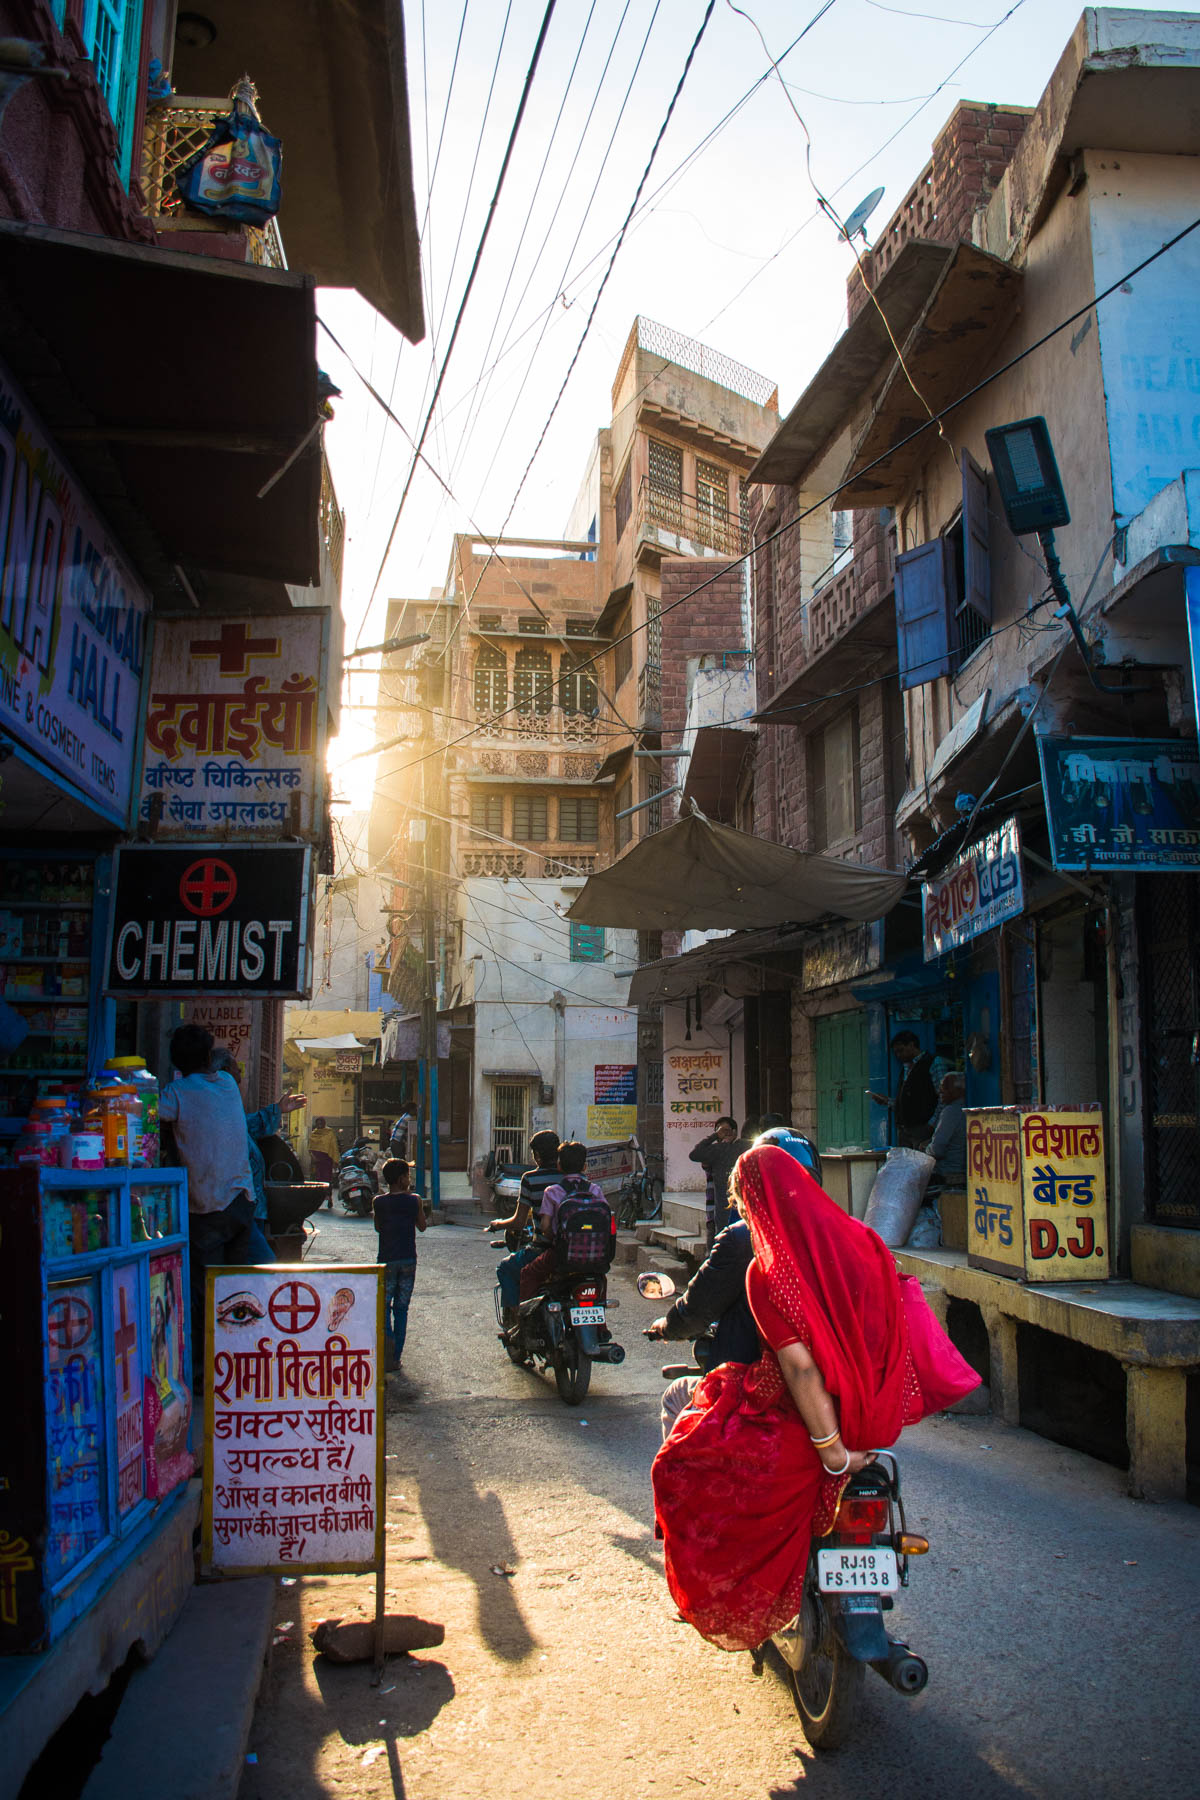 A lady in a red sari zipping past on a motorbike during sunset in Jodhpur, Rajasthan, India.